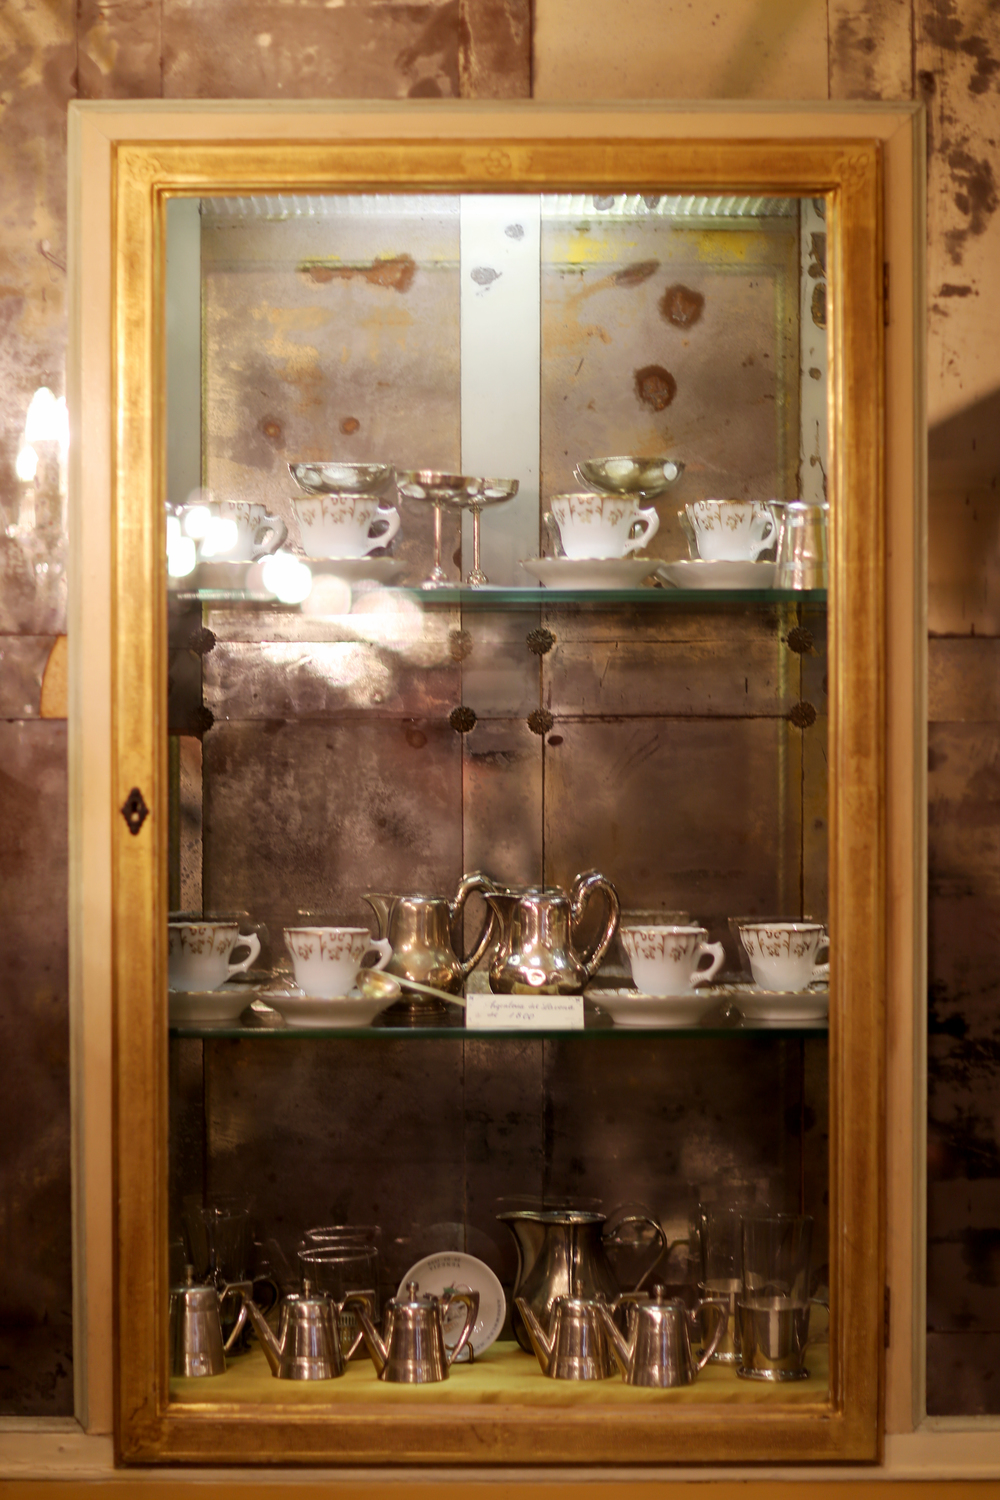 A display of a china and silver sets from circa 1800